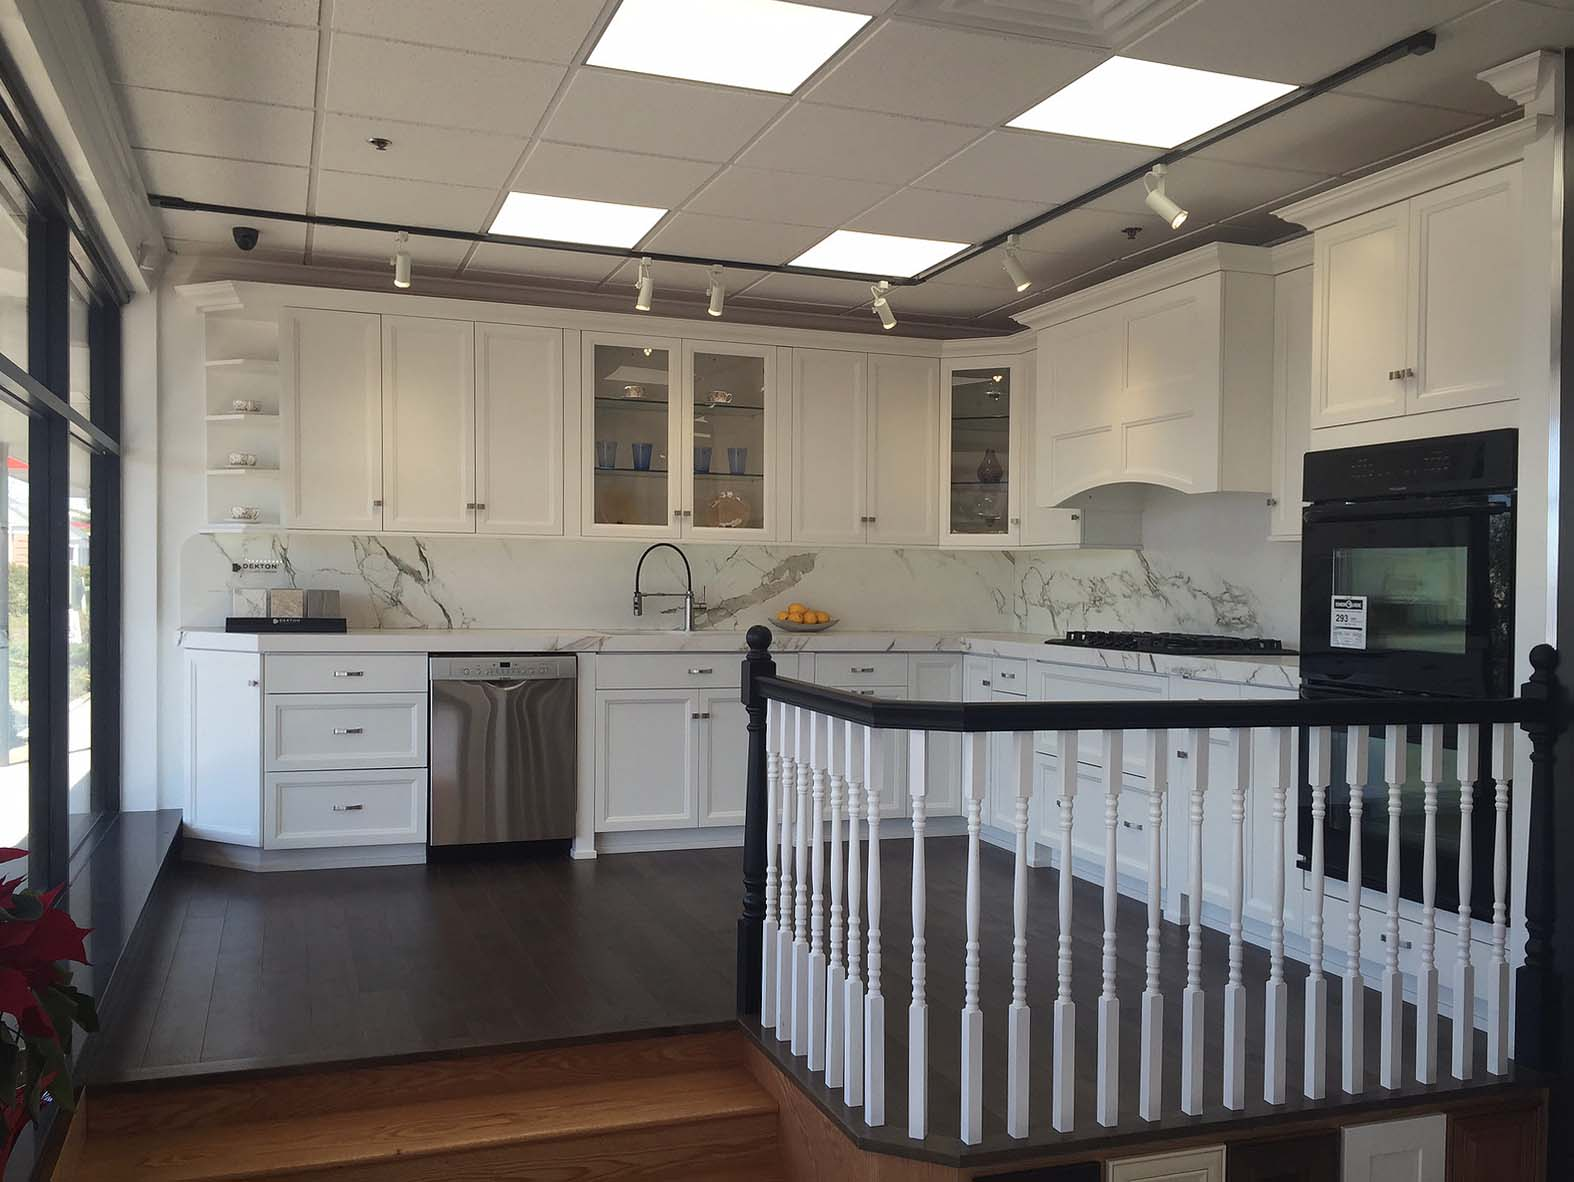 Home Improvement Renovation Services In Farmingdale Ny Global Flooring Inc